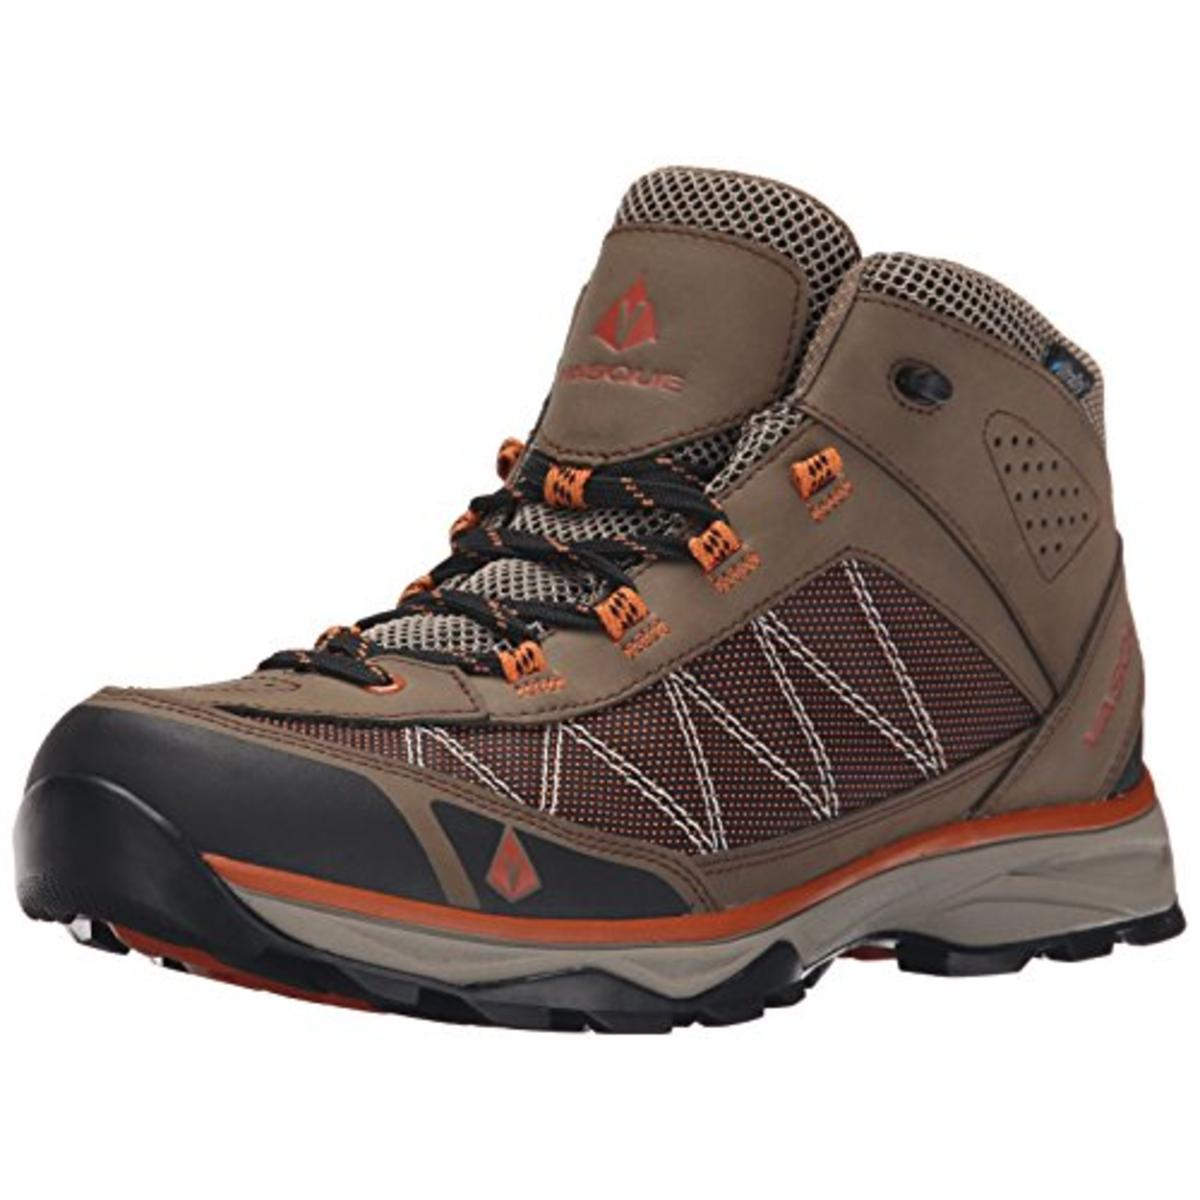 Vasque Mens Monolith Mesh Inset Ultra Dry Hiking Boots by Vasque